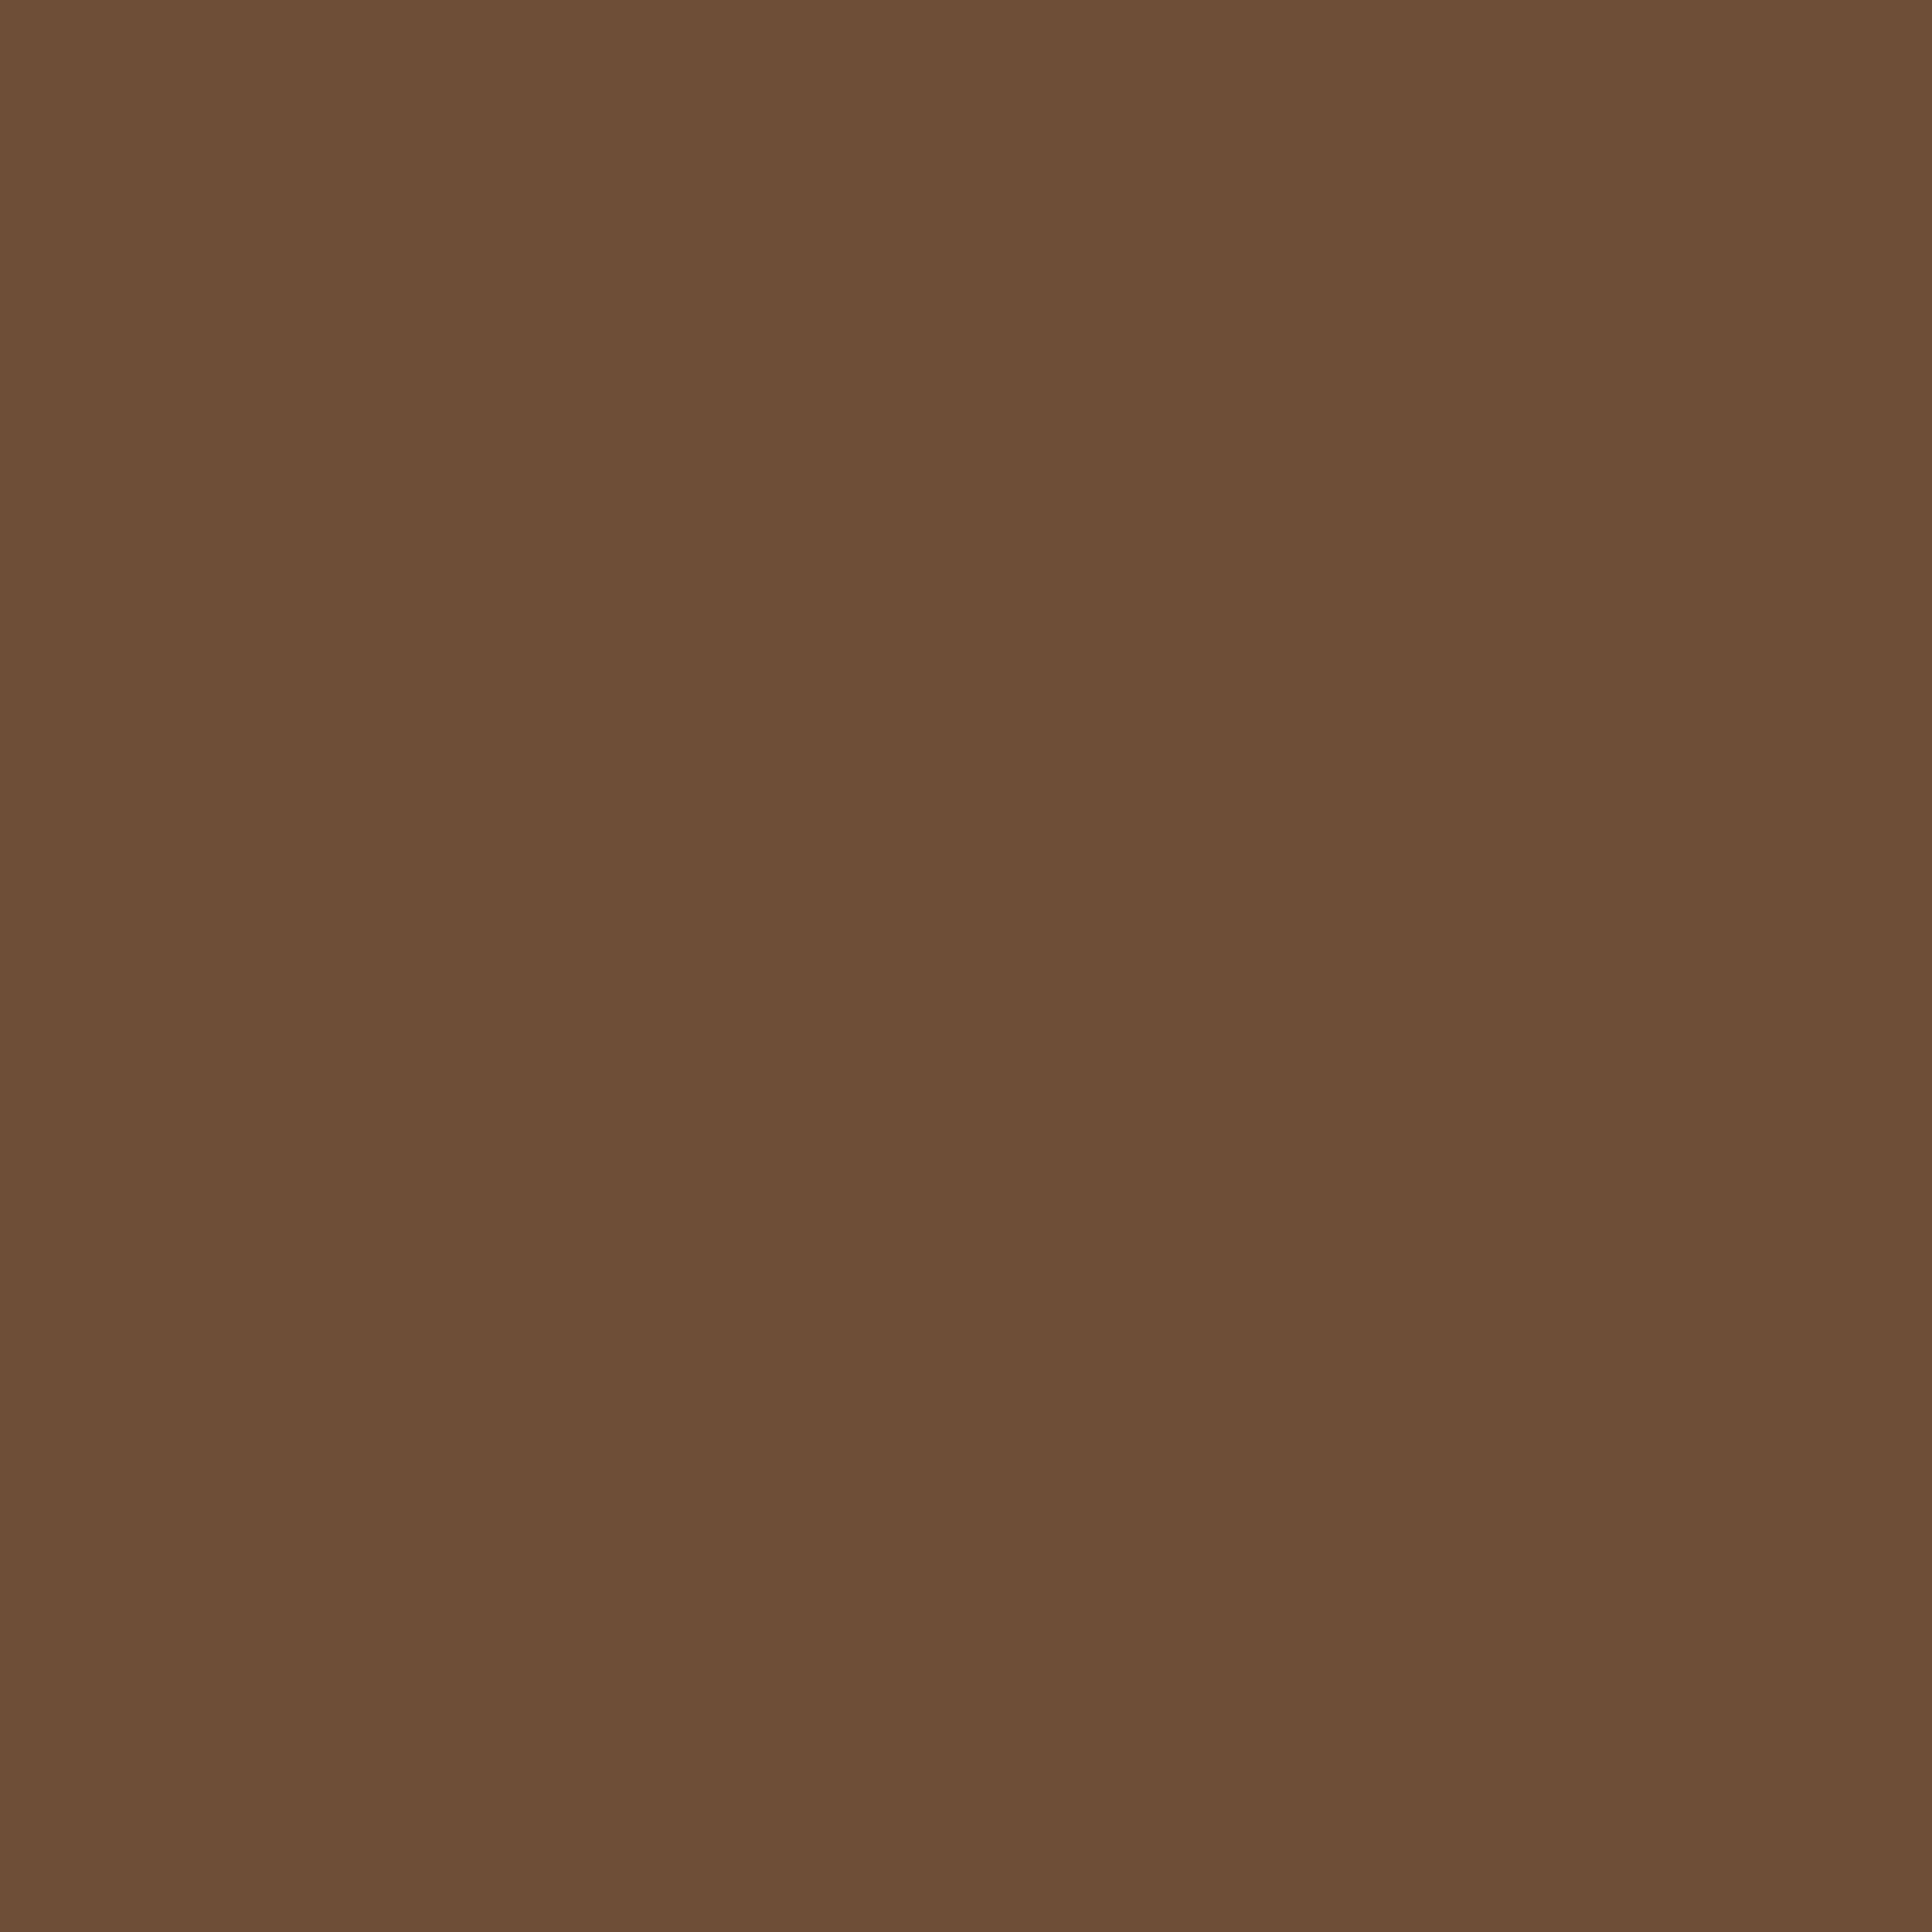 2732x2732 Tuscan Brown Solid Color Background